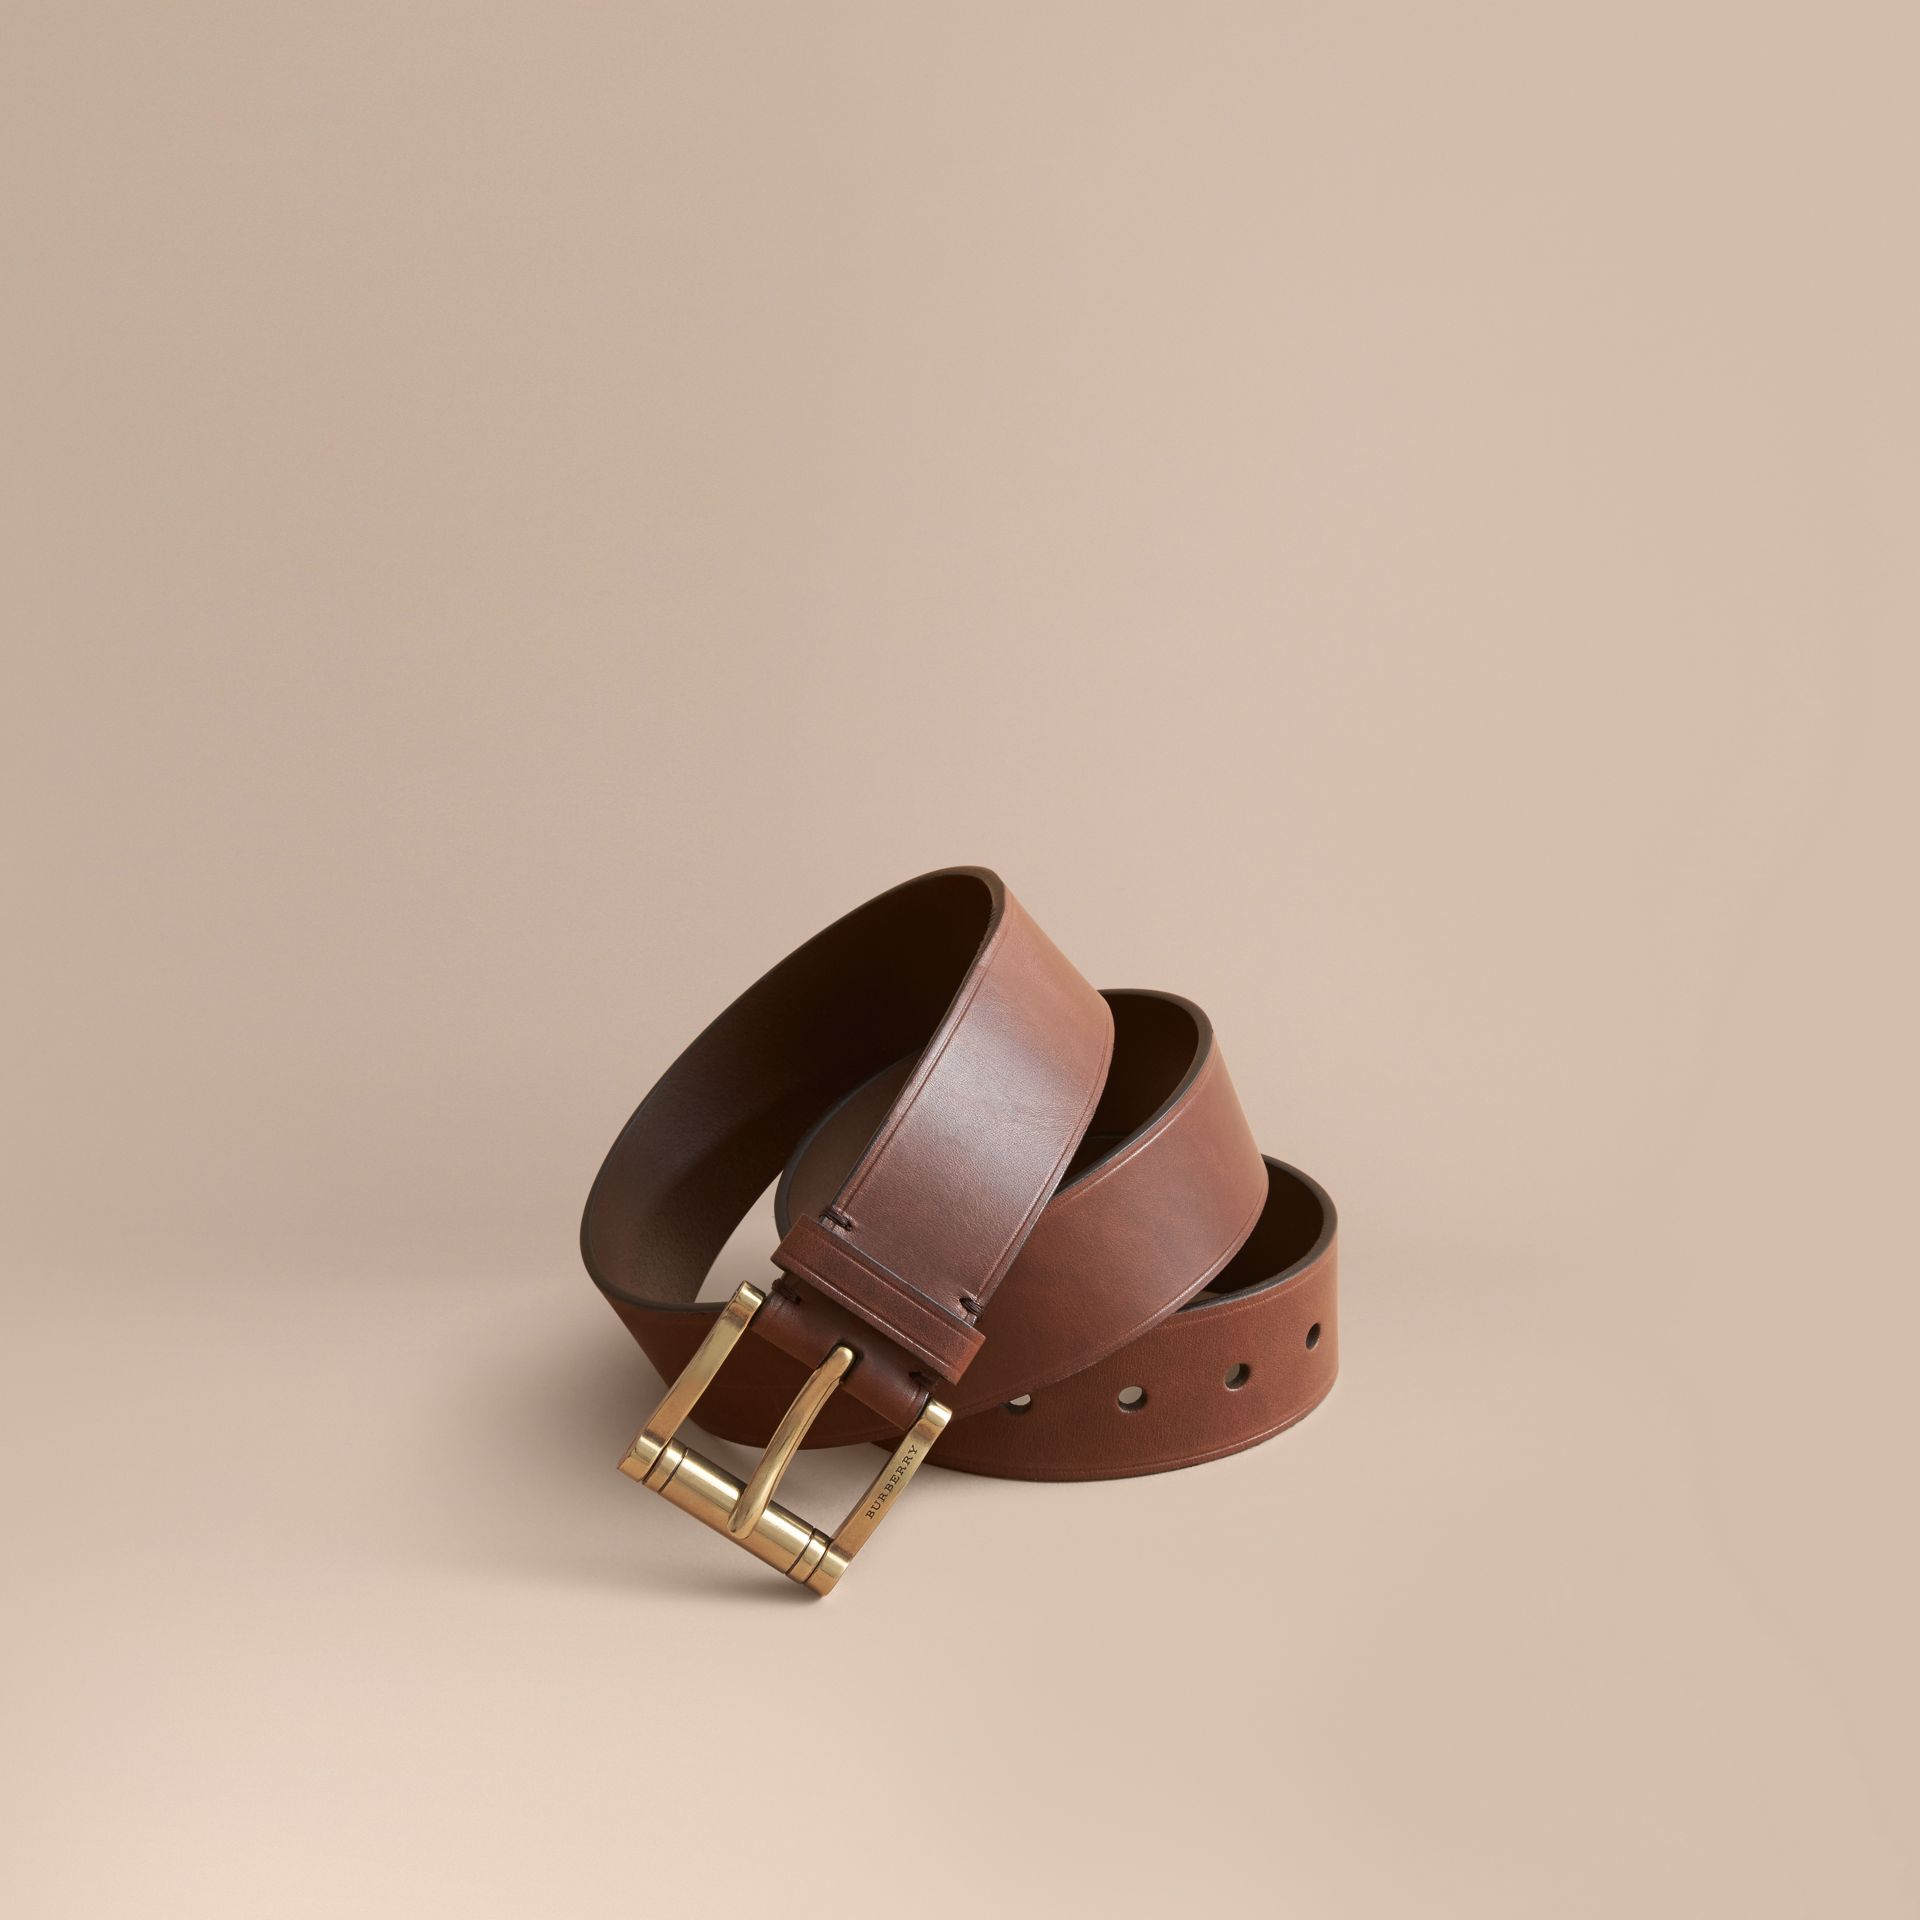 Brass Buckle Leather Belt in Auburn - Men | Burberry Australia - gallery image 1